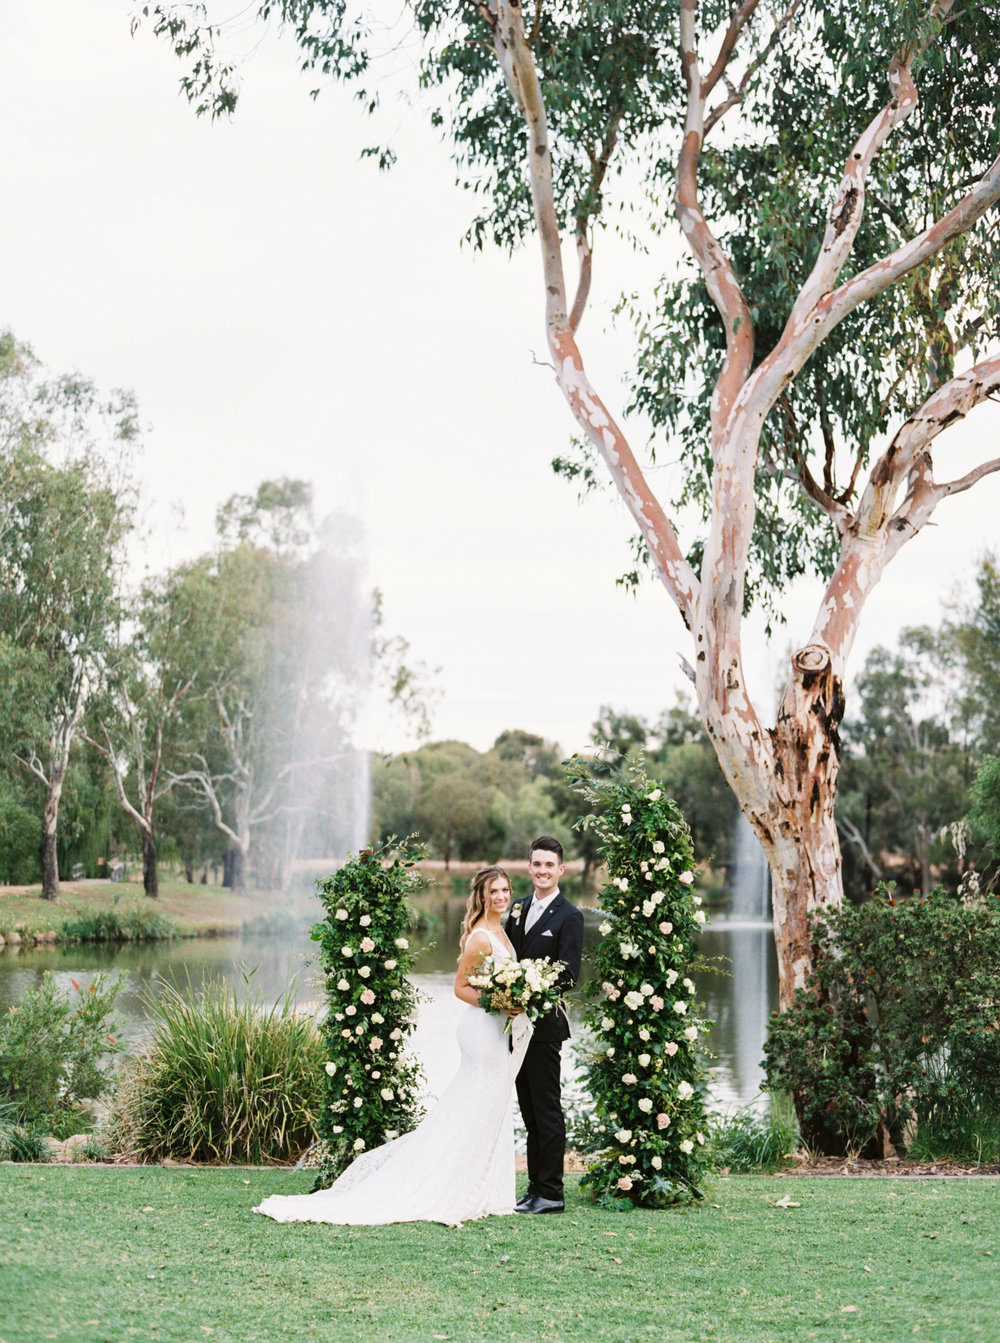 00001- Newcastle NSW Hunter Valley Wedding Photographer Sheri McMahon.jpg